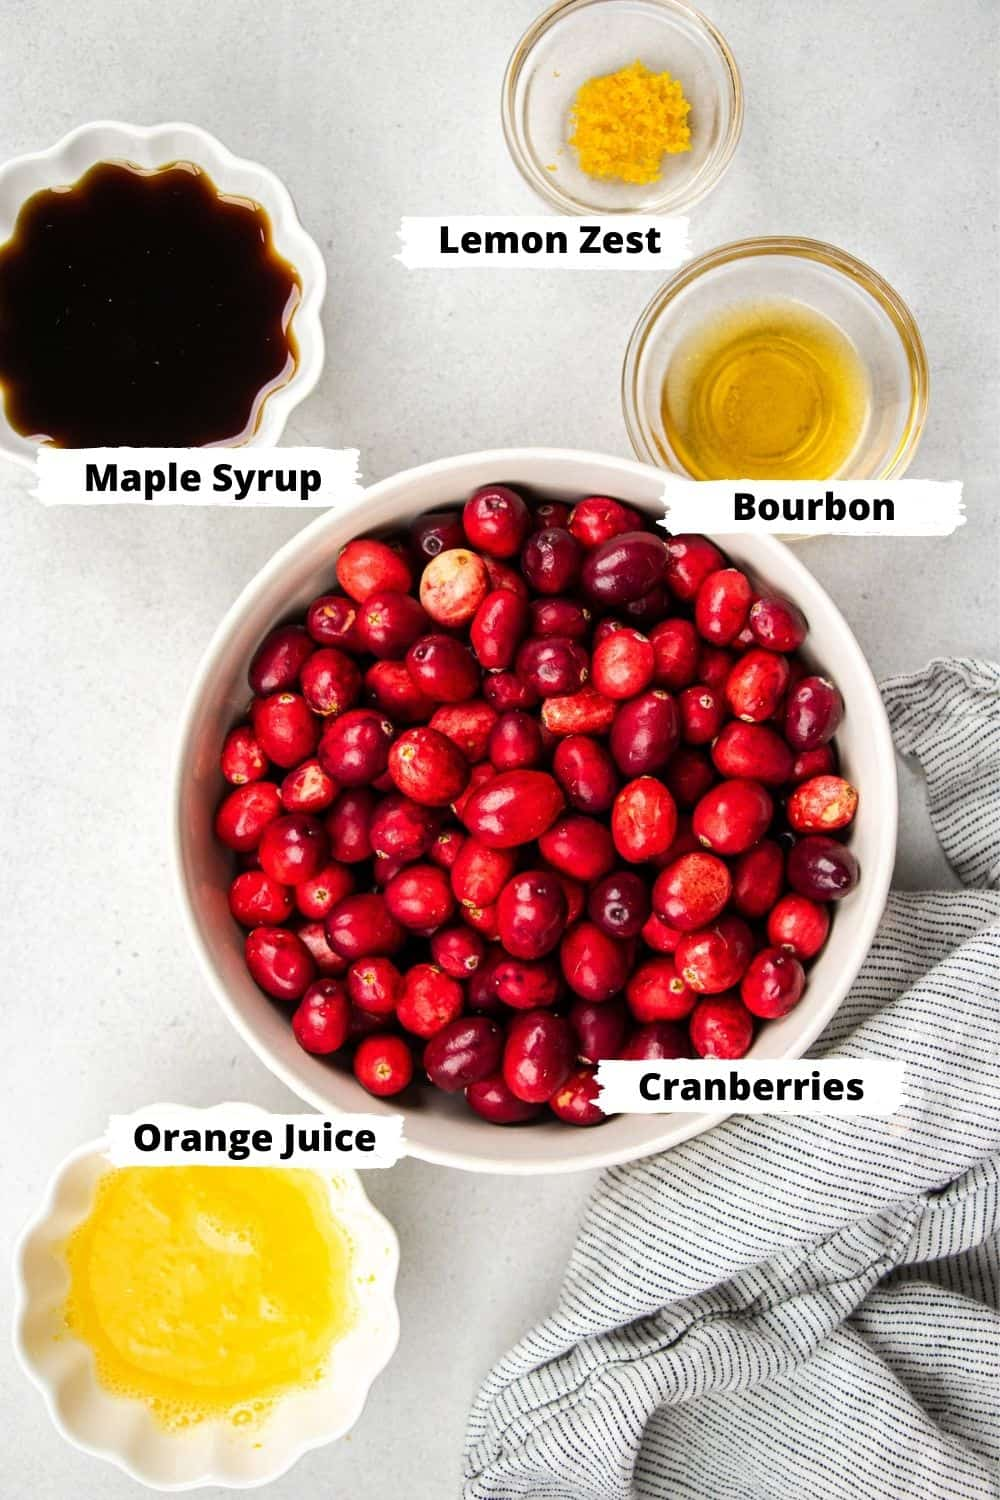 Ingredients for Bourbon Cranberry Sauce.